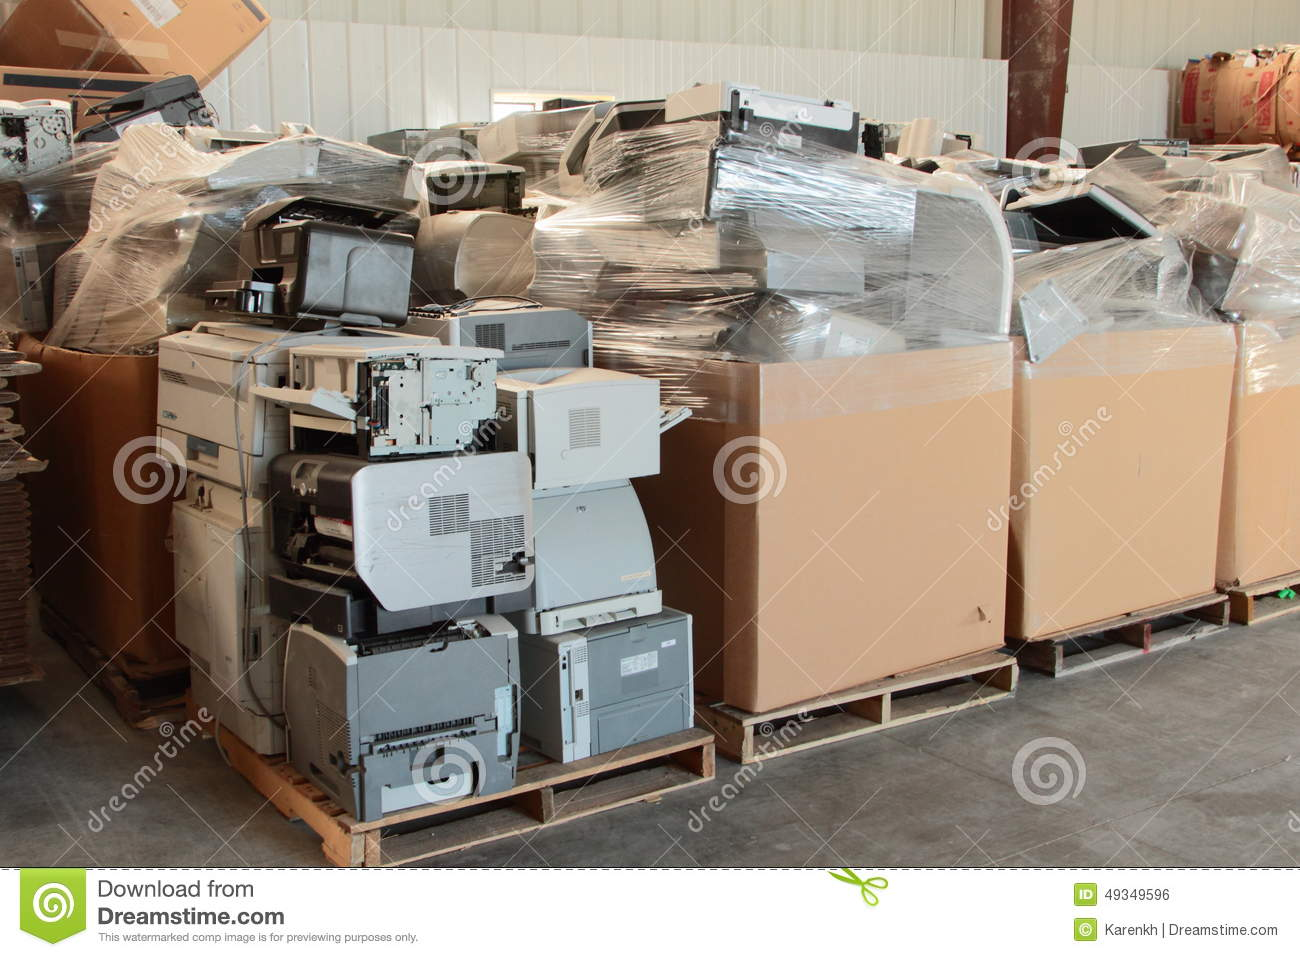 Office Equipment And Other Electronic Waste